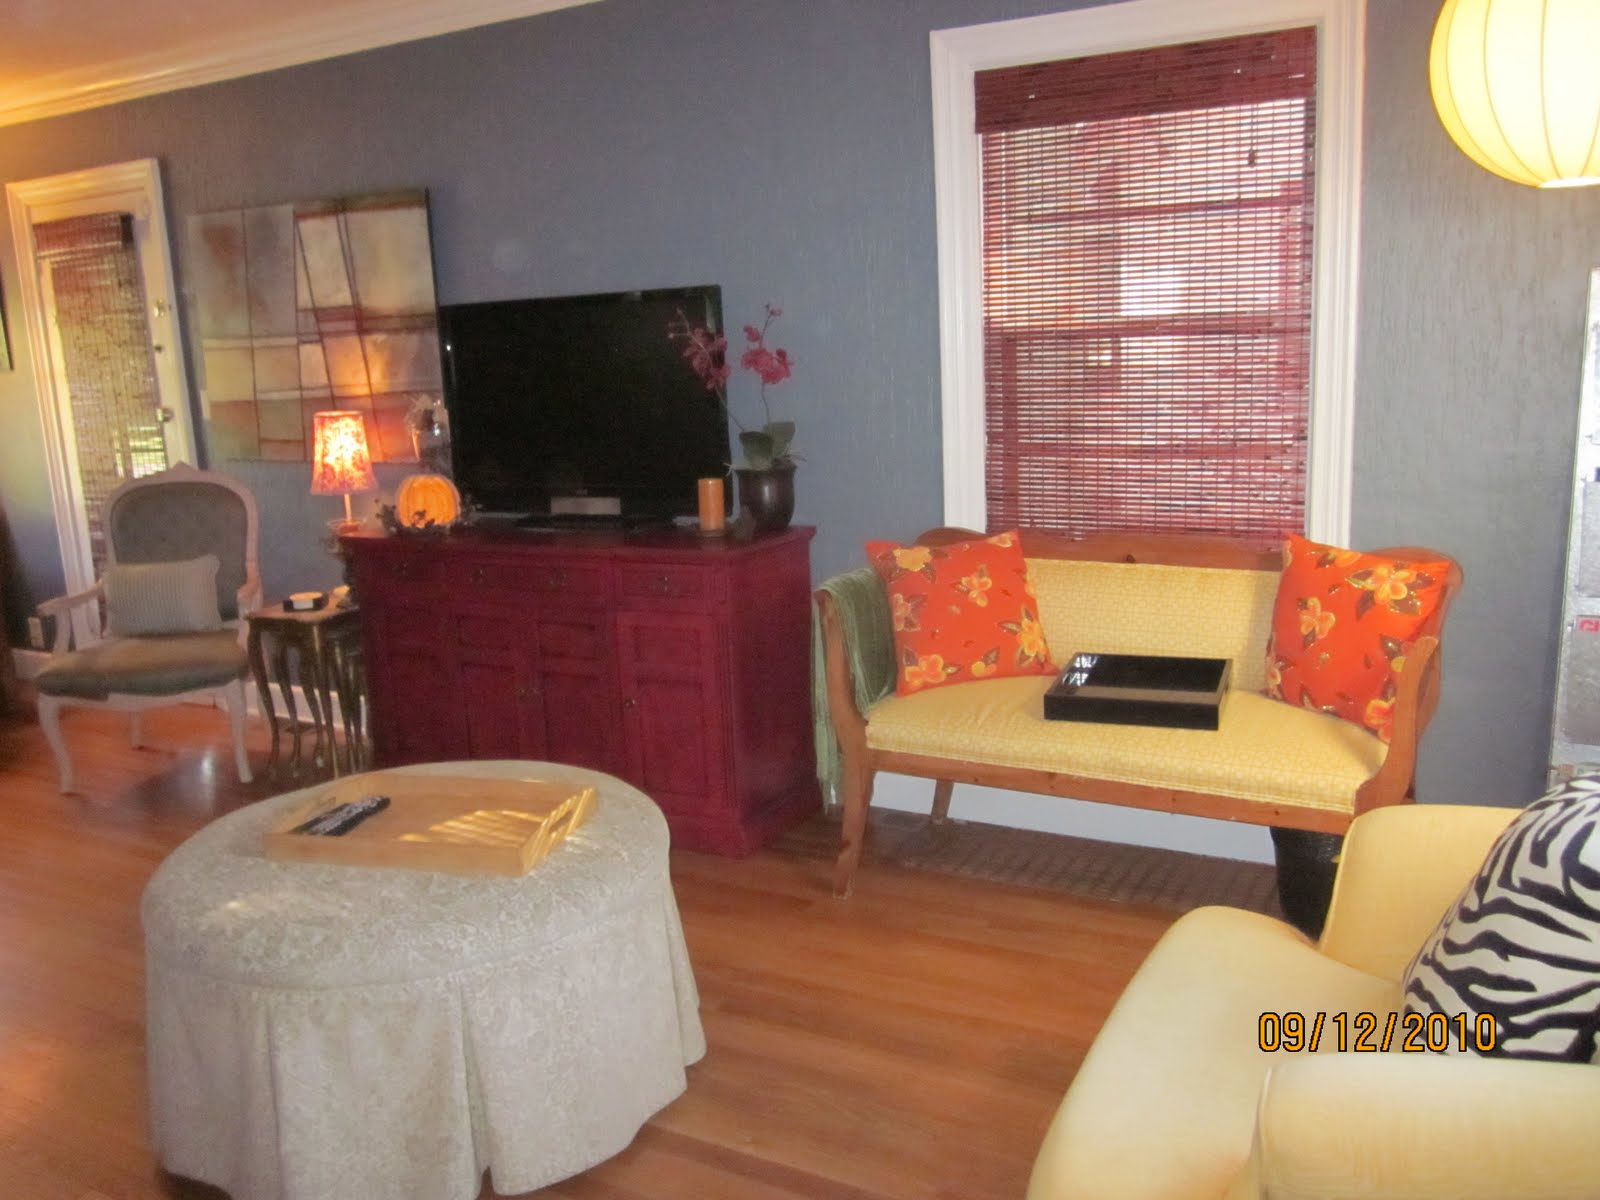 Reused Furniture reused consignment furniture: send in your pictures for the